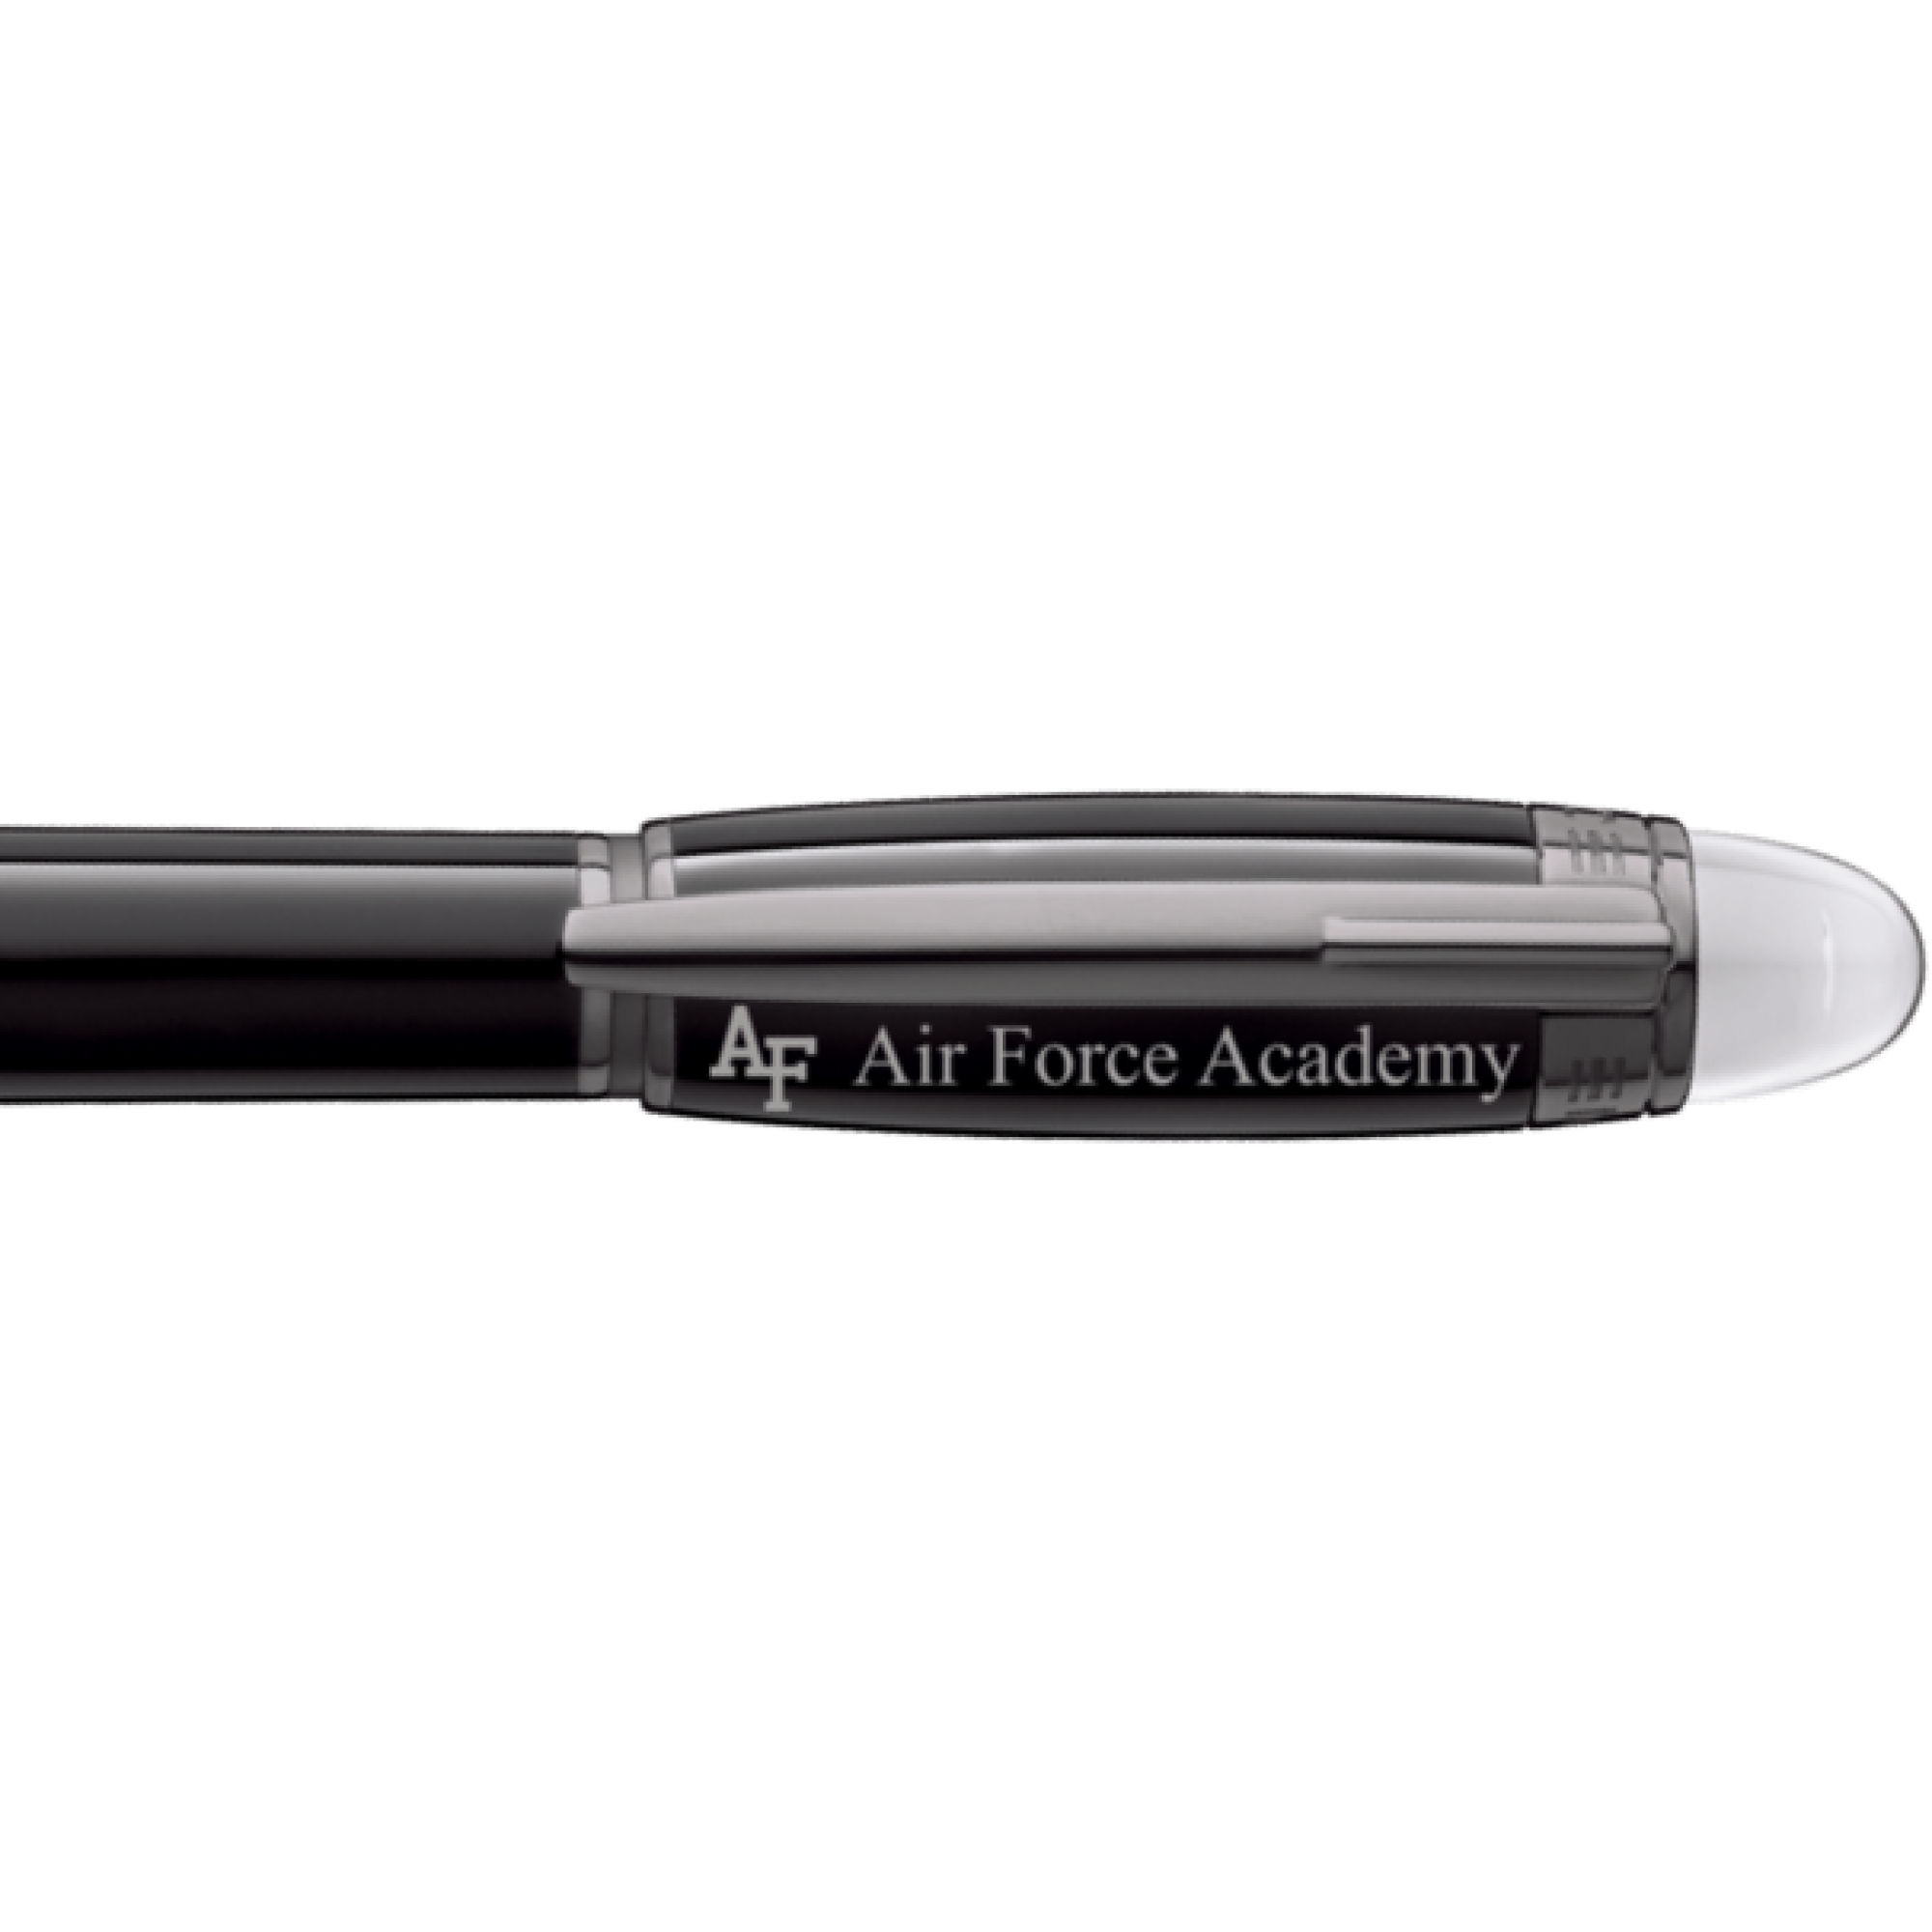 US Air Force Academy Montblanc StarWalker Fineliner Pen in Ruthenium